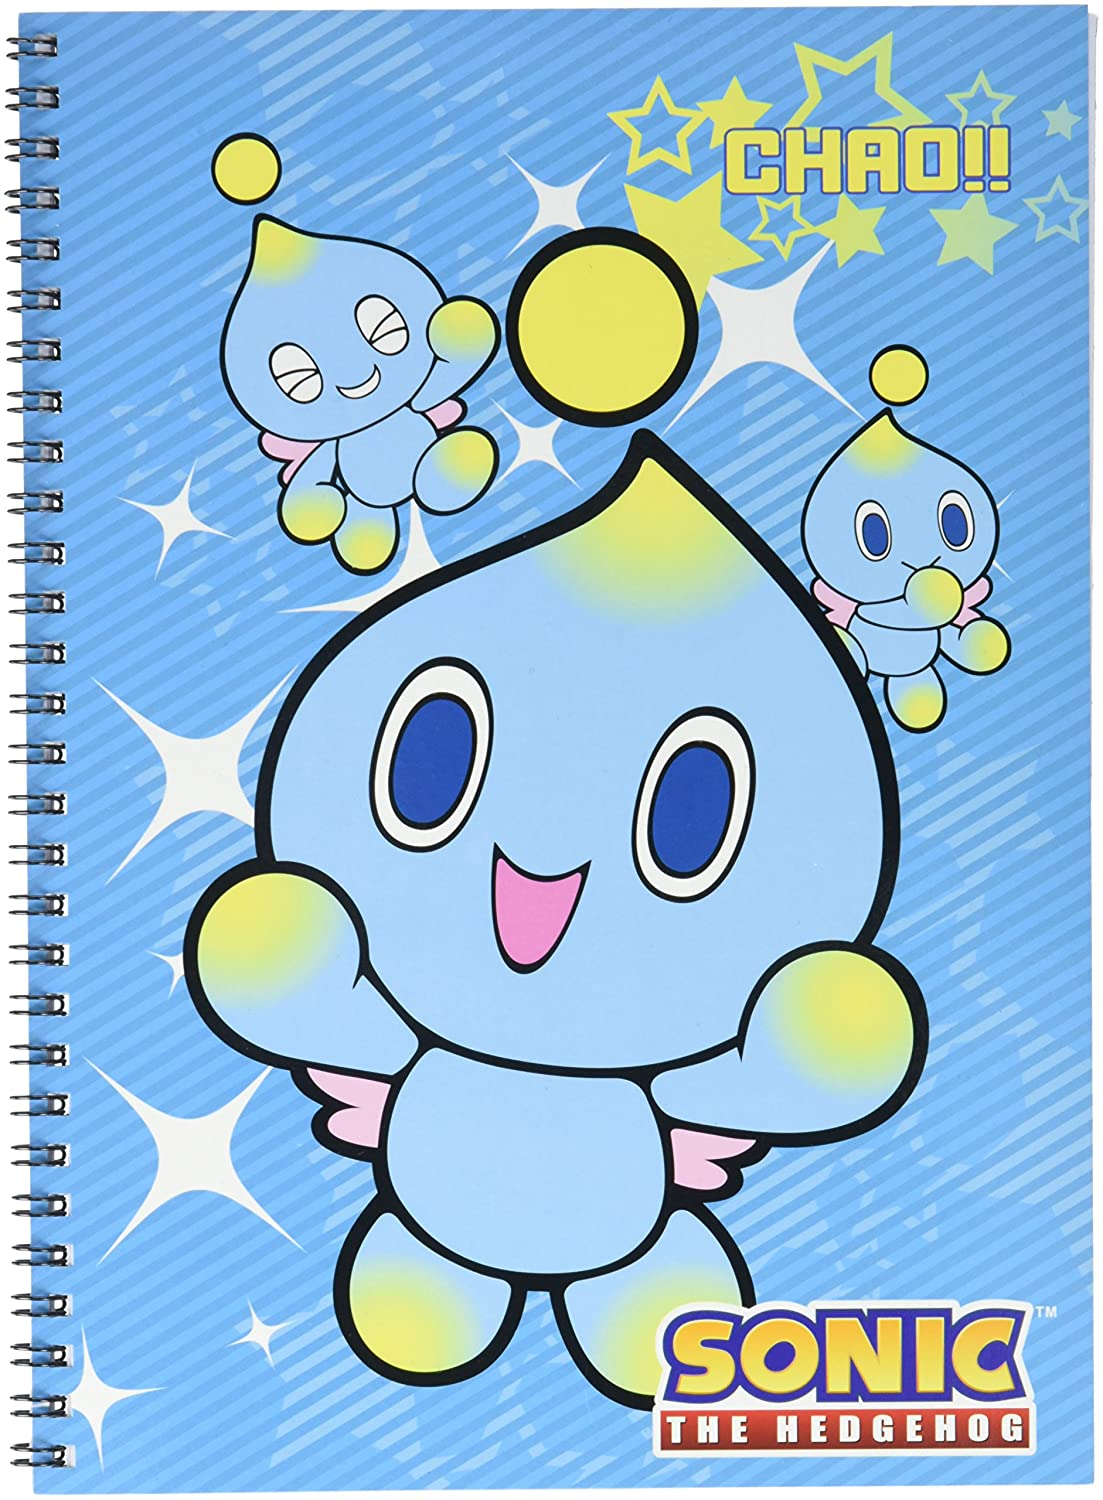 Sonic The Hedgehog Chao Spiral Notebook Great Eastern Entertainment Inc. 43034